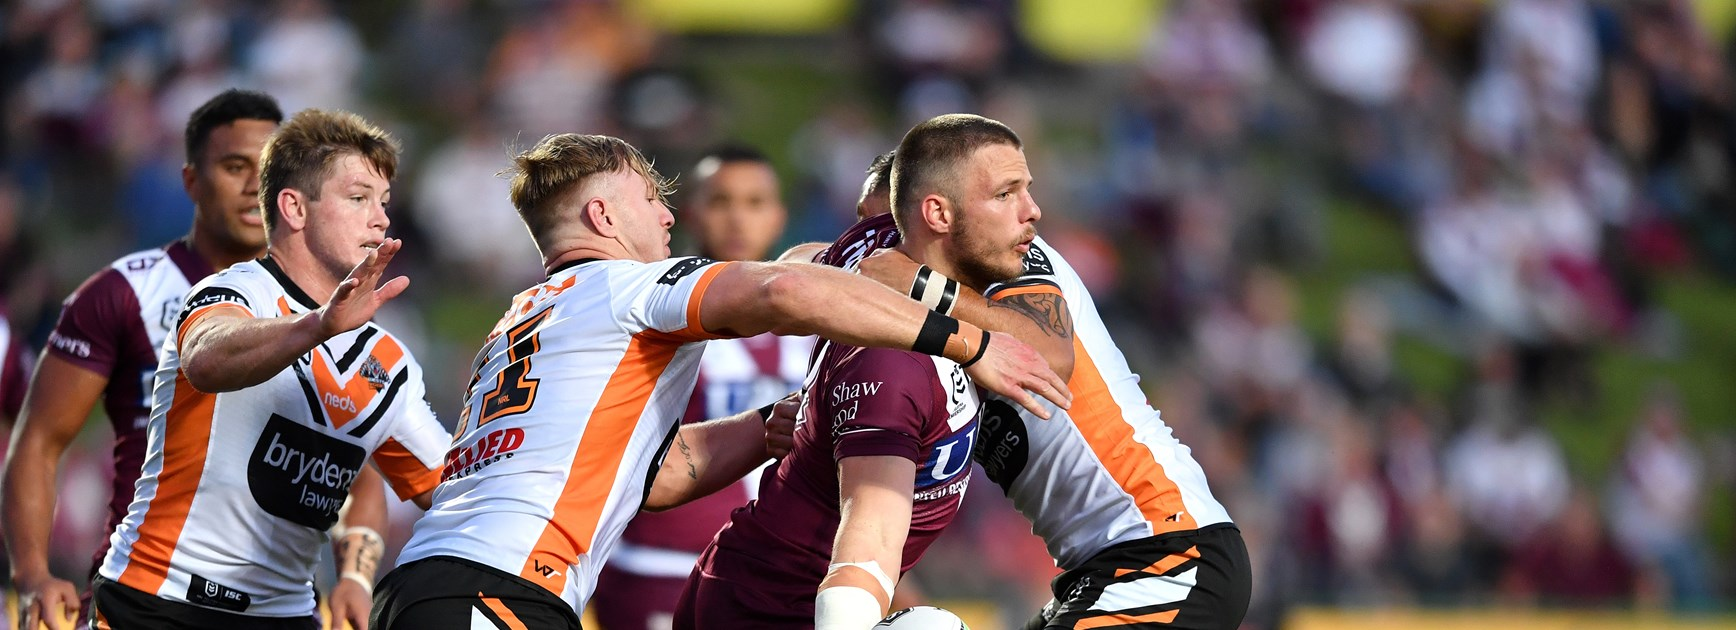 Sea Eagles suffer heart-breaking loss to Tigers